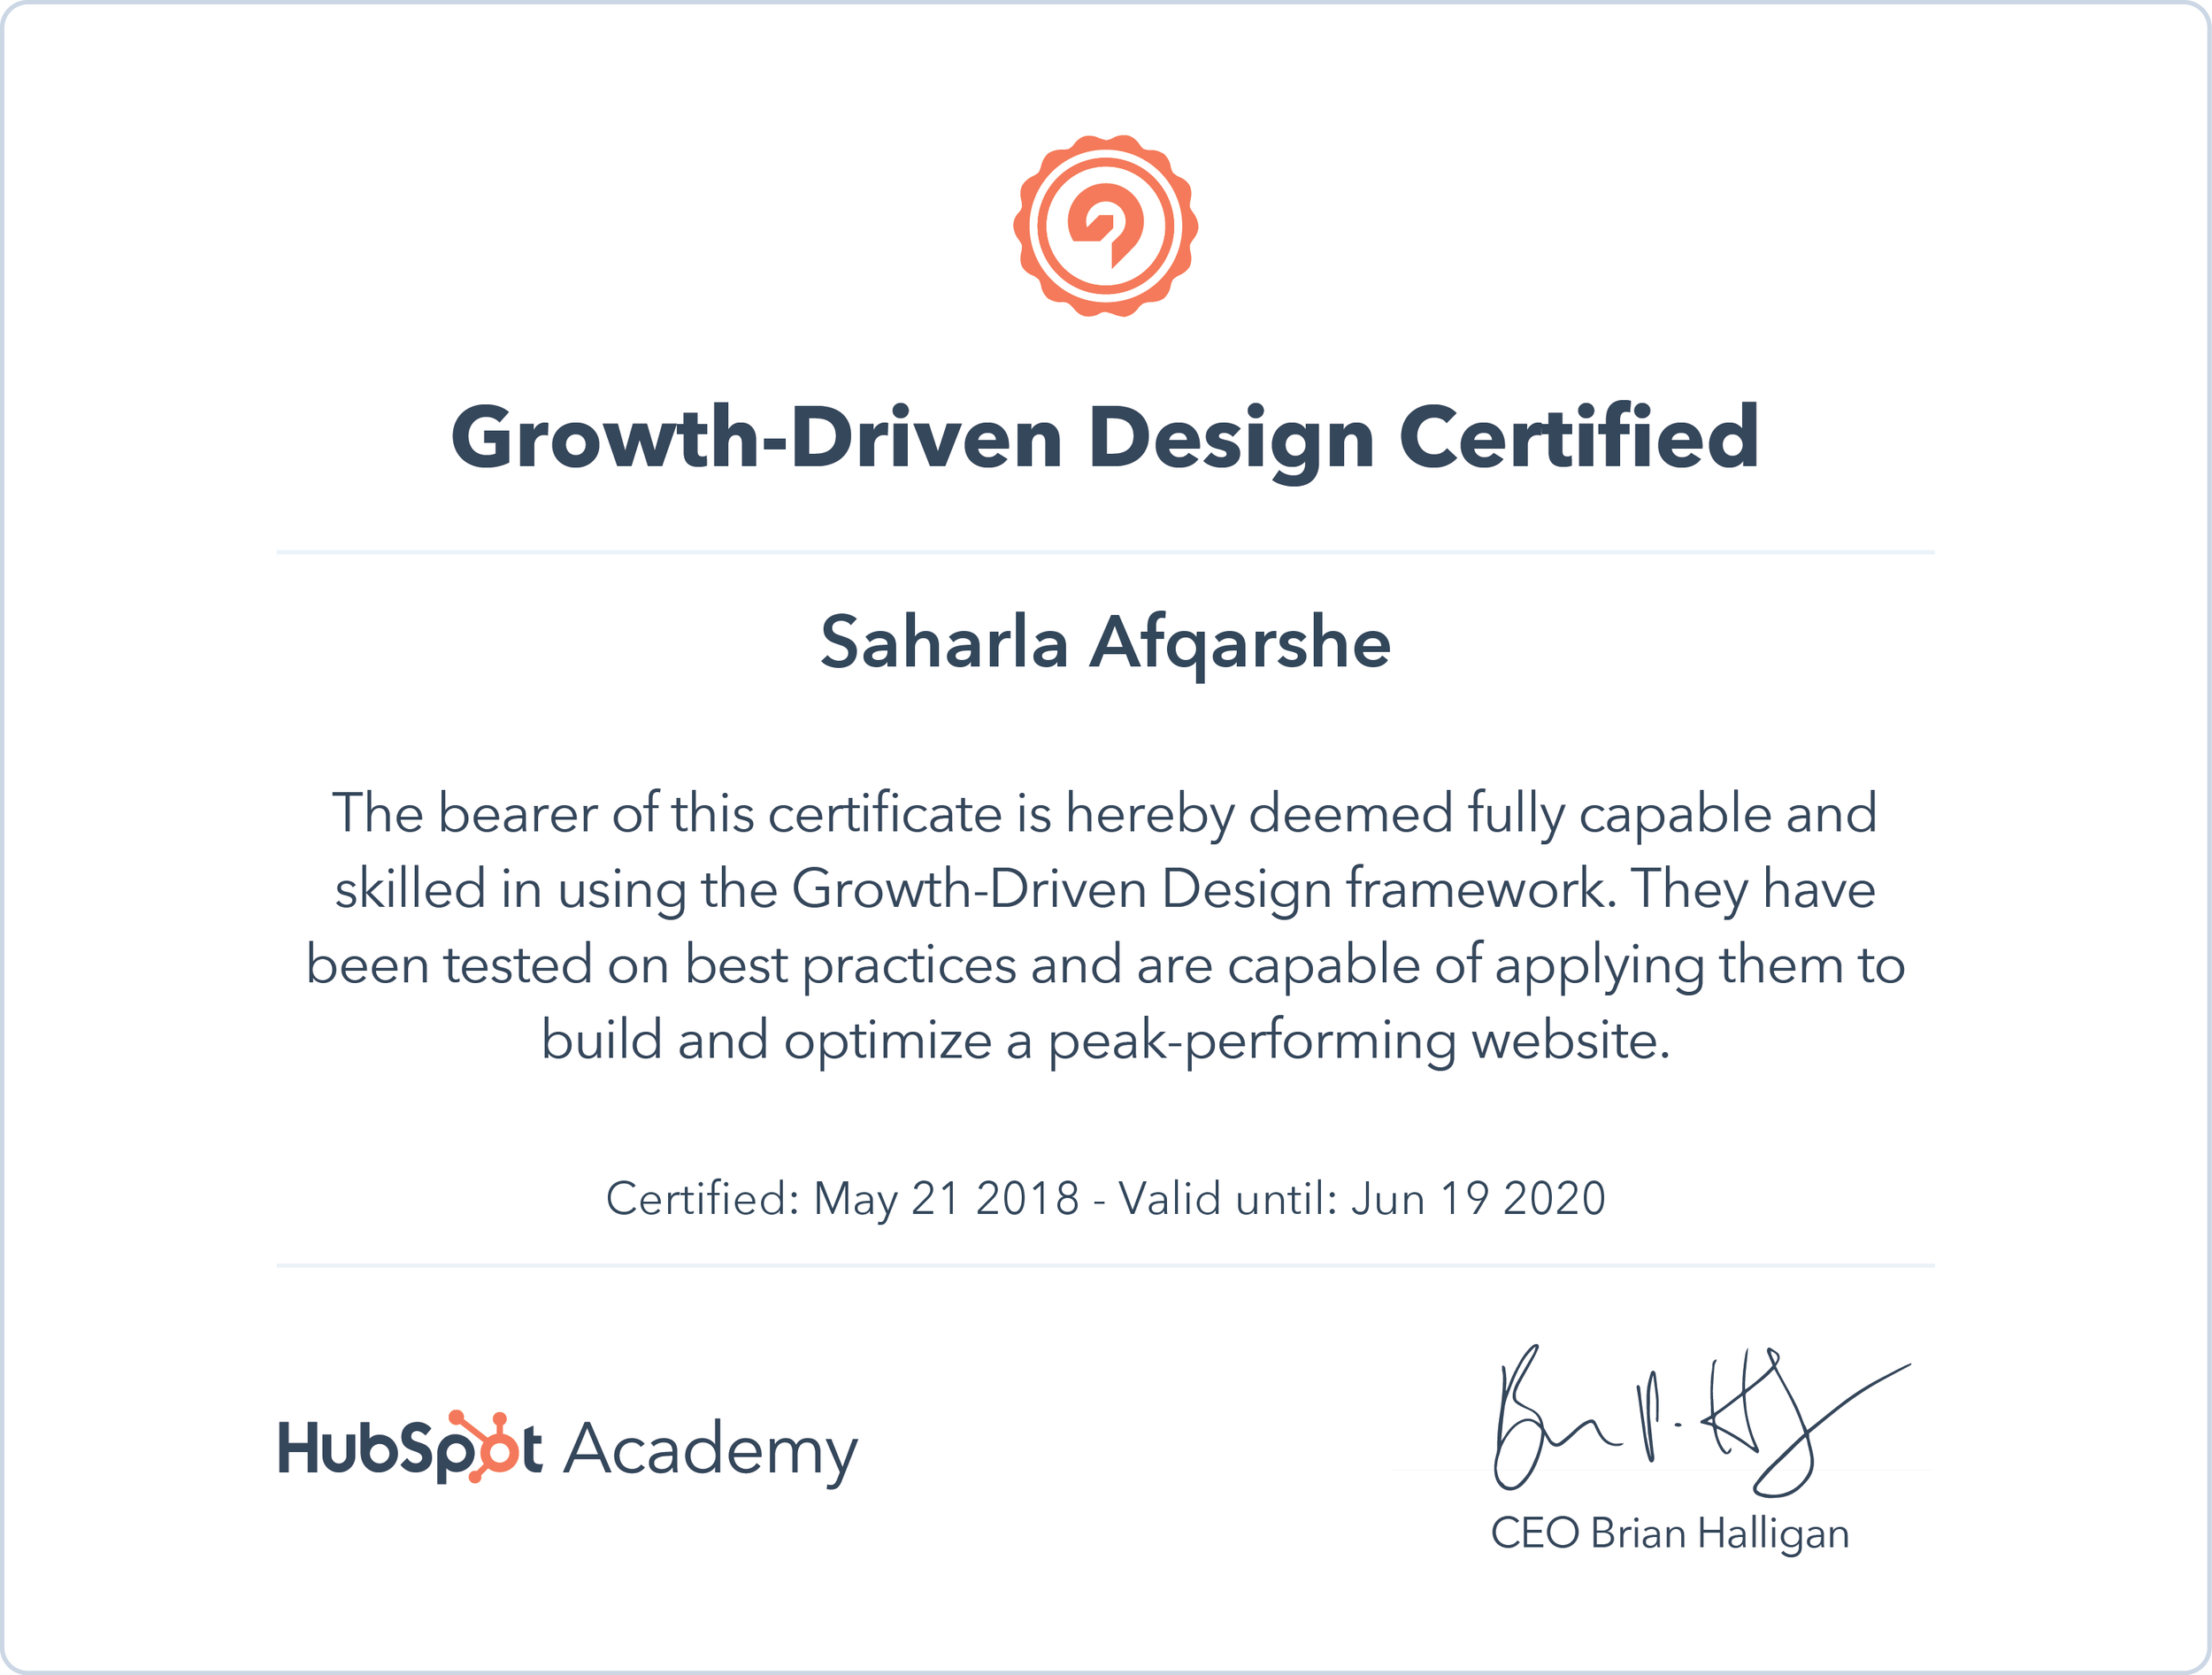 Growth Driven Design Certificate Saharla Afqarshe.png